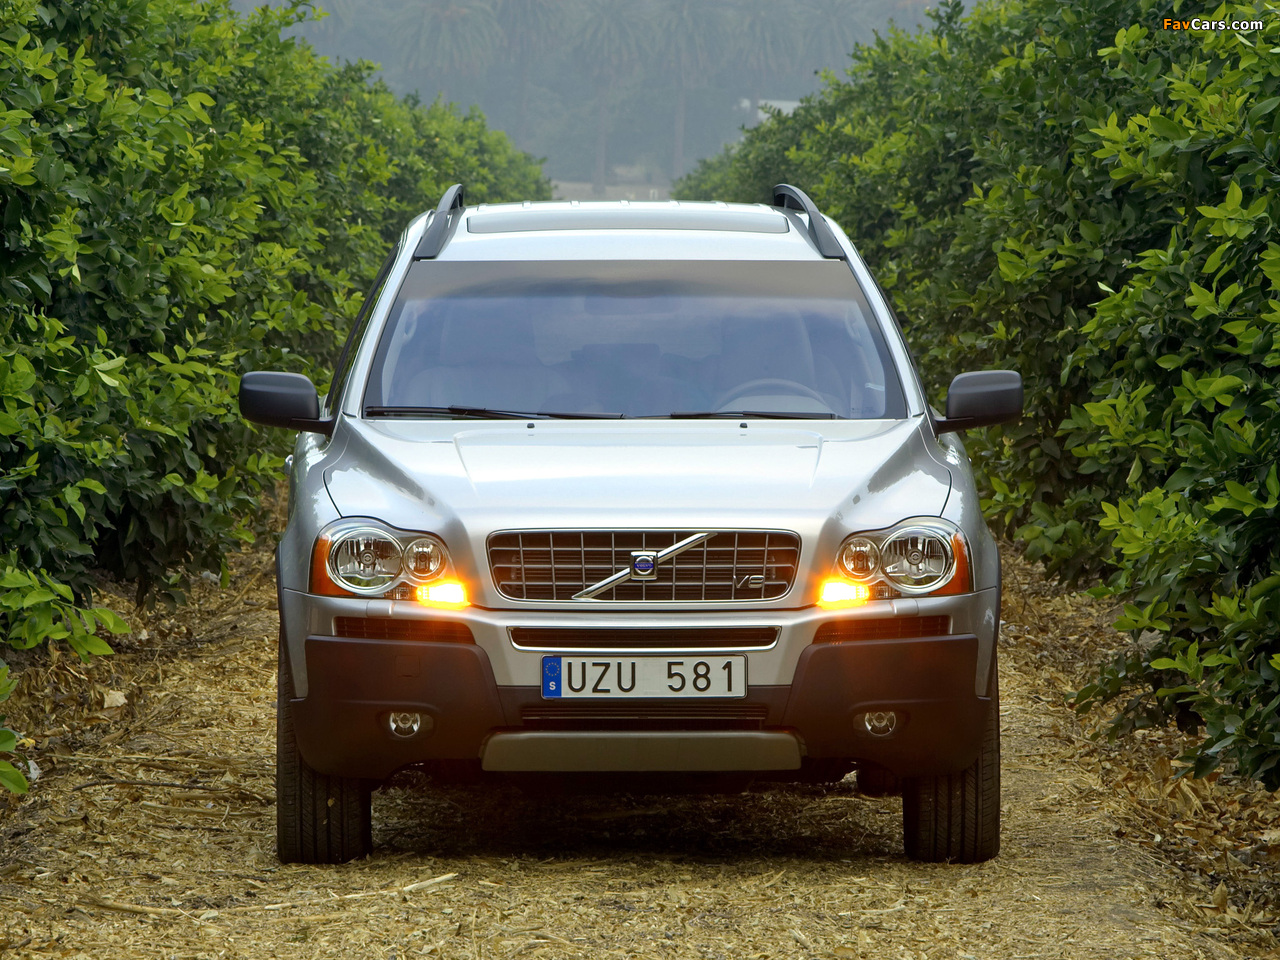 Volvo Xc90 V8 2005 07 Pictures 1280x960